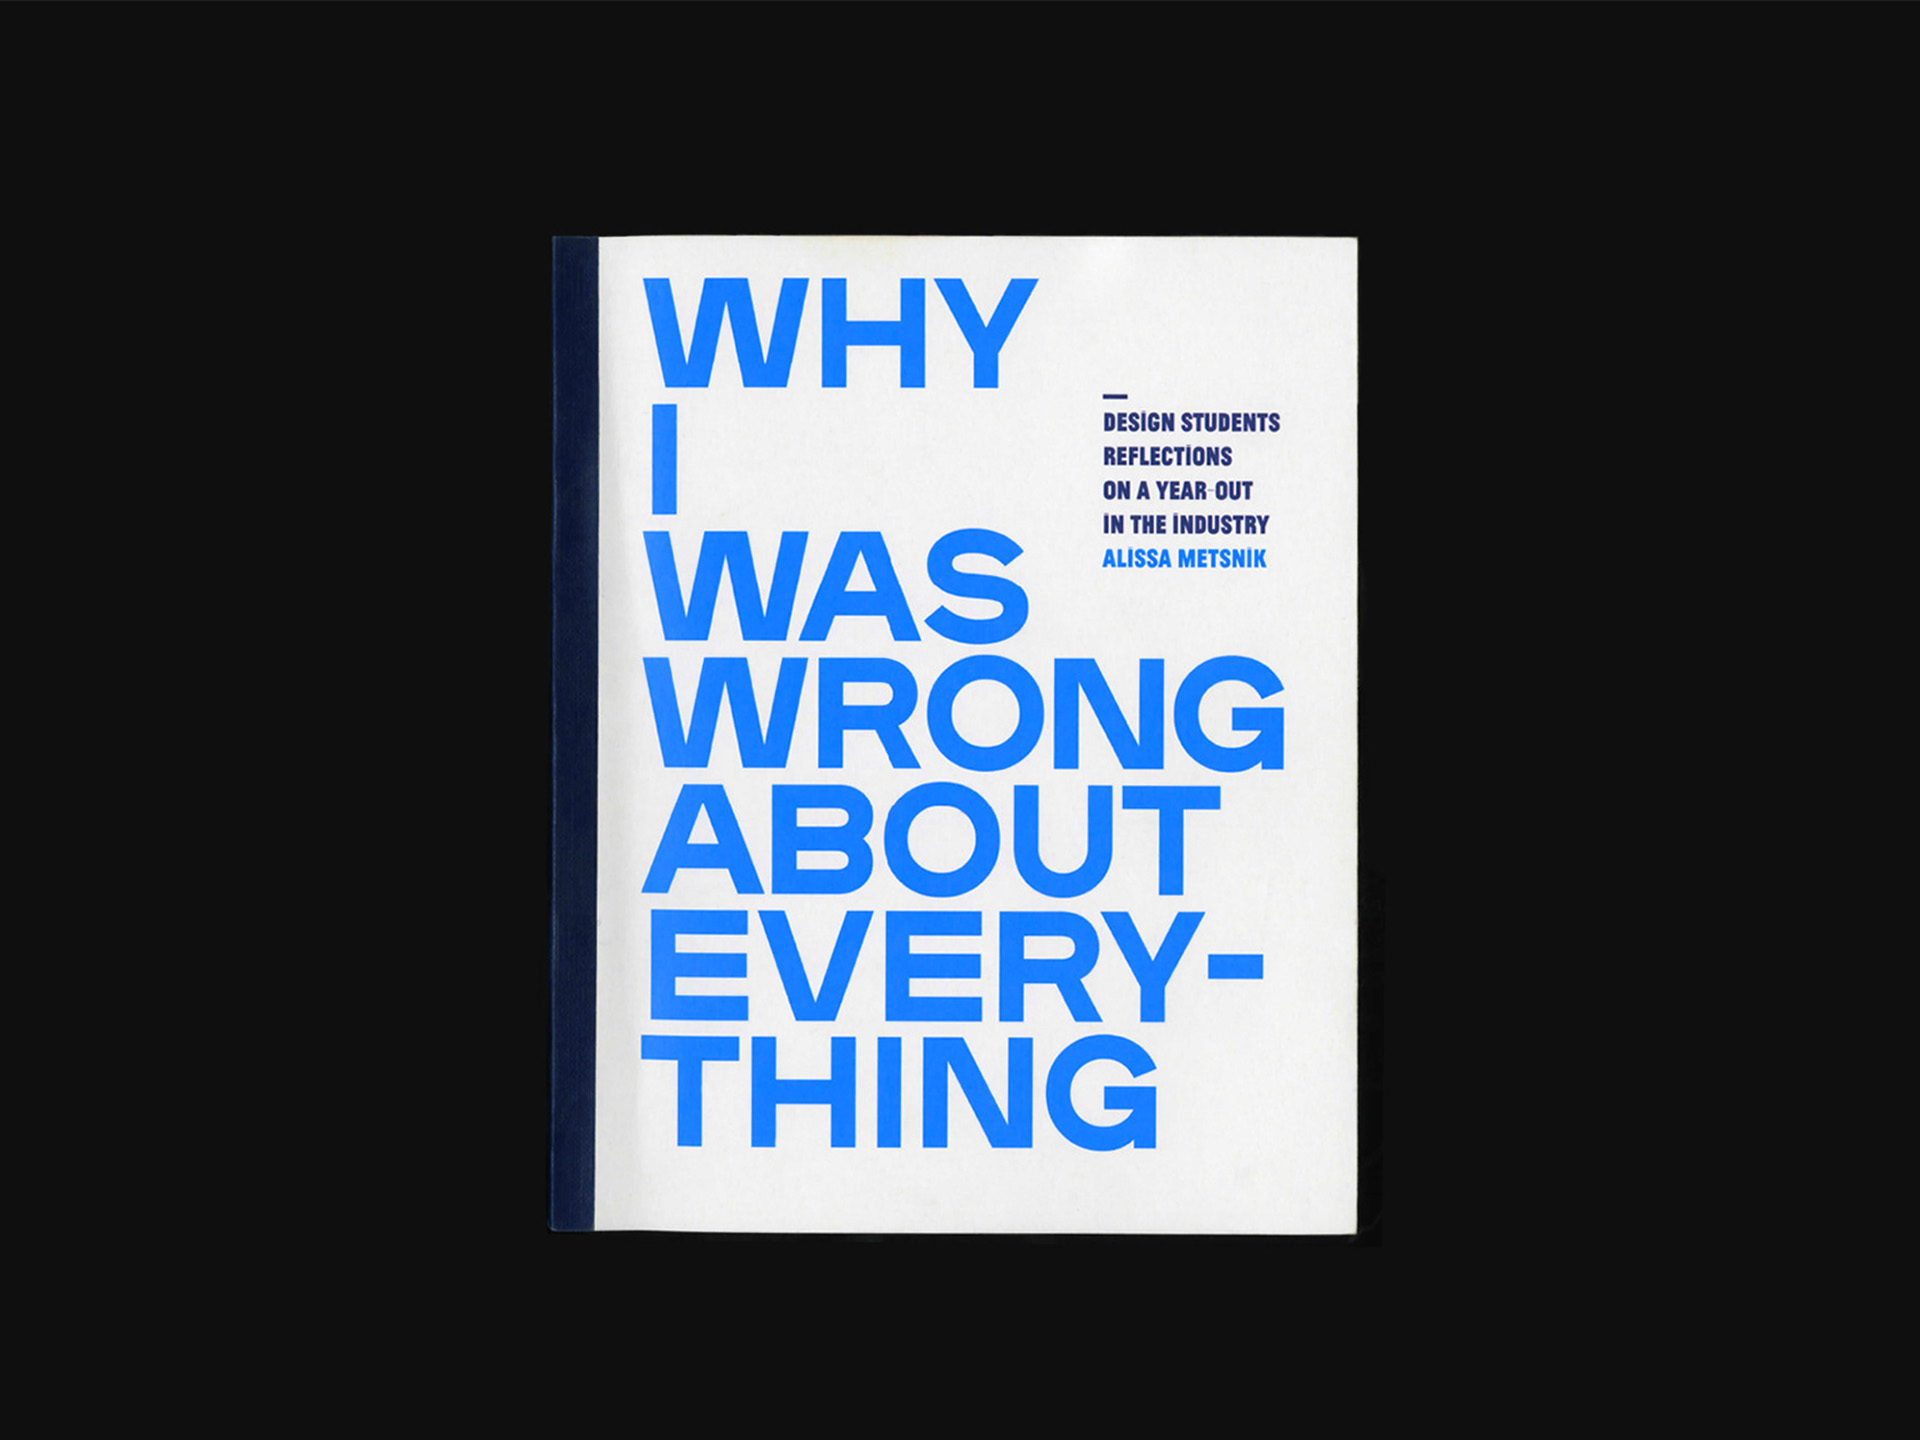 Why I Was Wrong About Everything